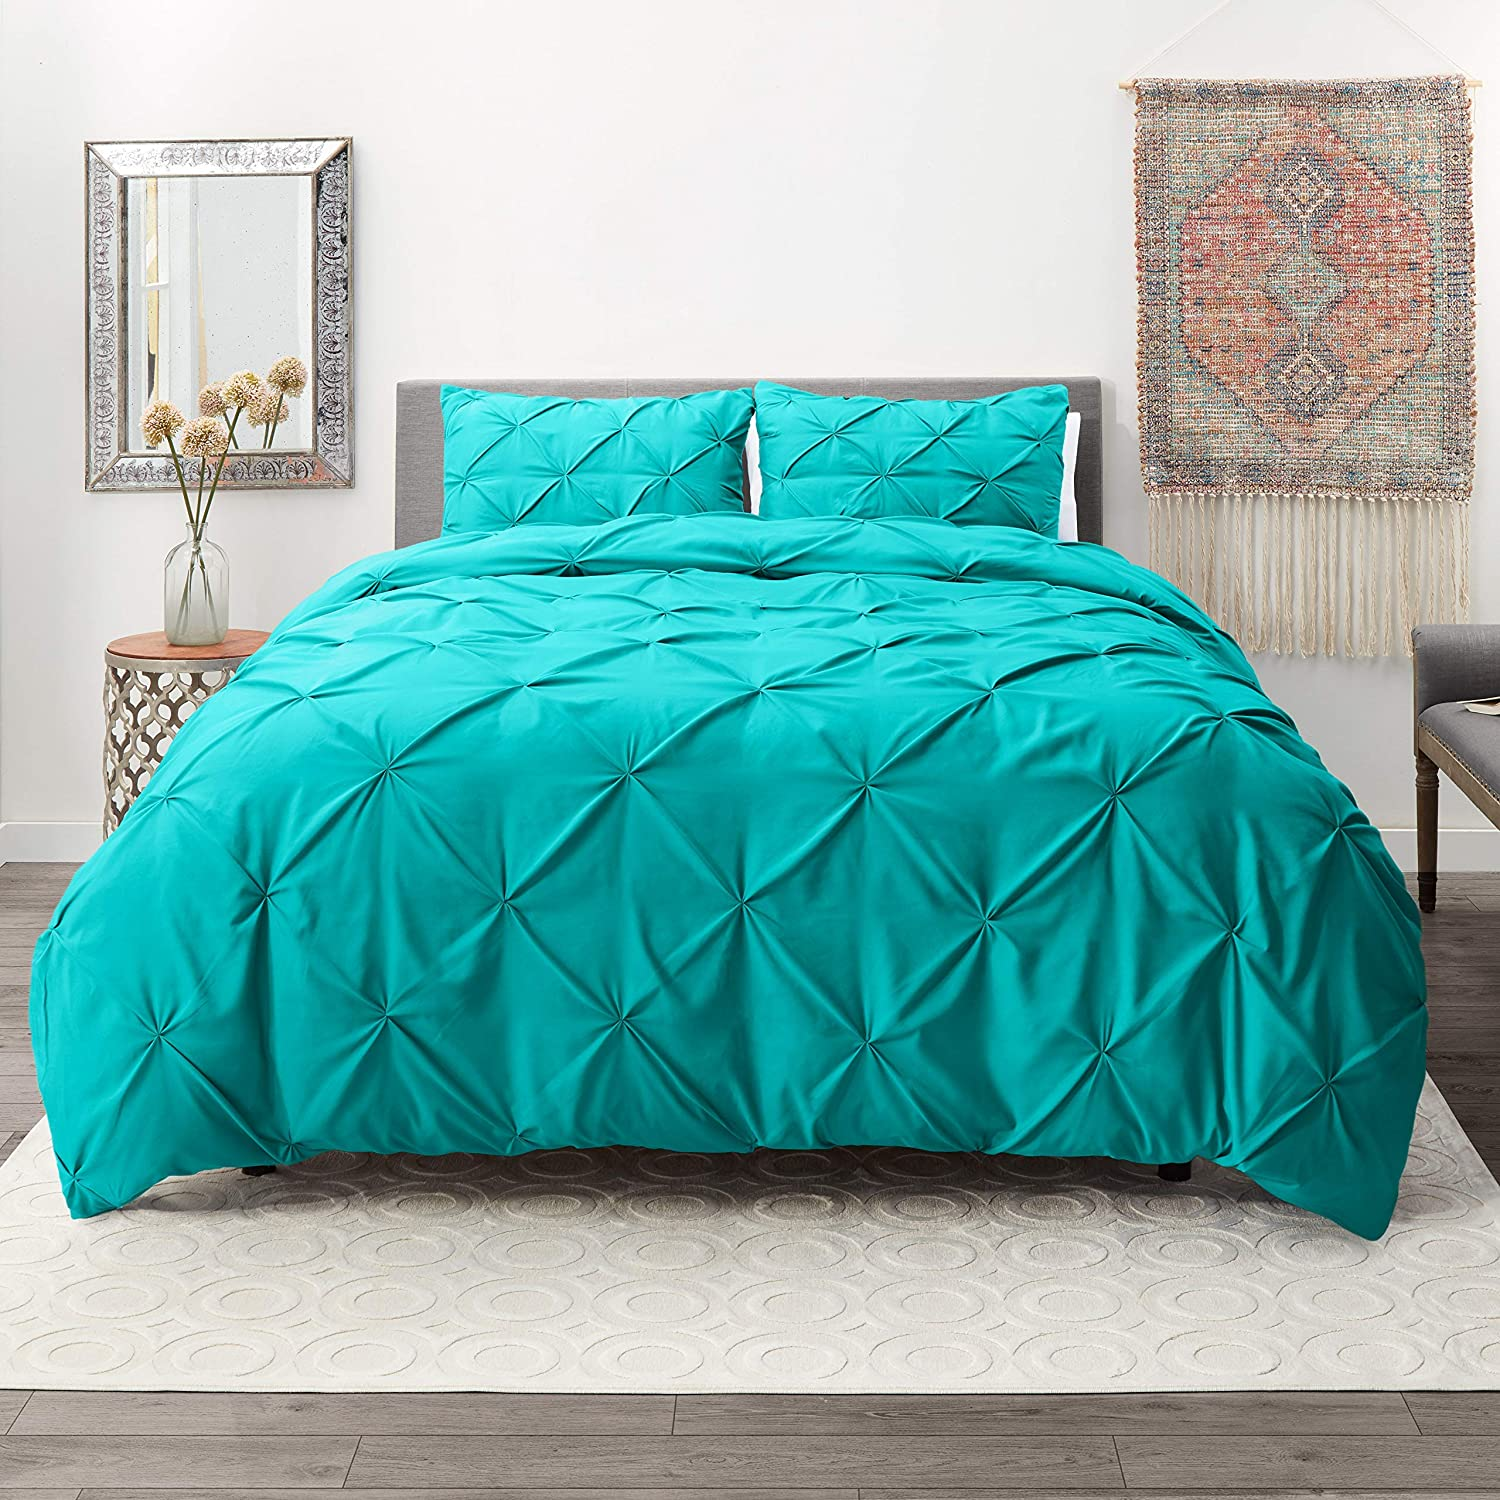 Hotel Signature Comfy Dot Bedding 3 Piece Pinch Pleat Duvet Cover Set Organic Cotton Duvet Cover with 2 Pillow Shams - (Twin/Twin XL Pinch Teal)